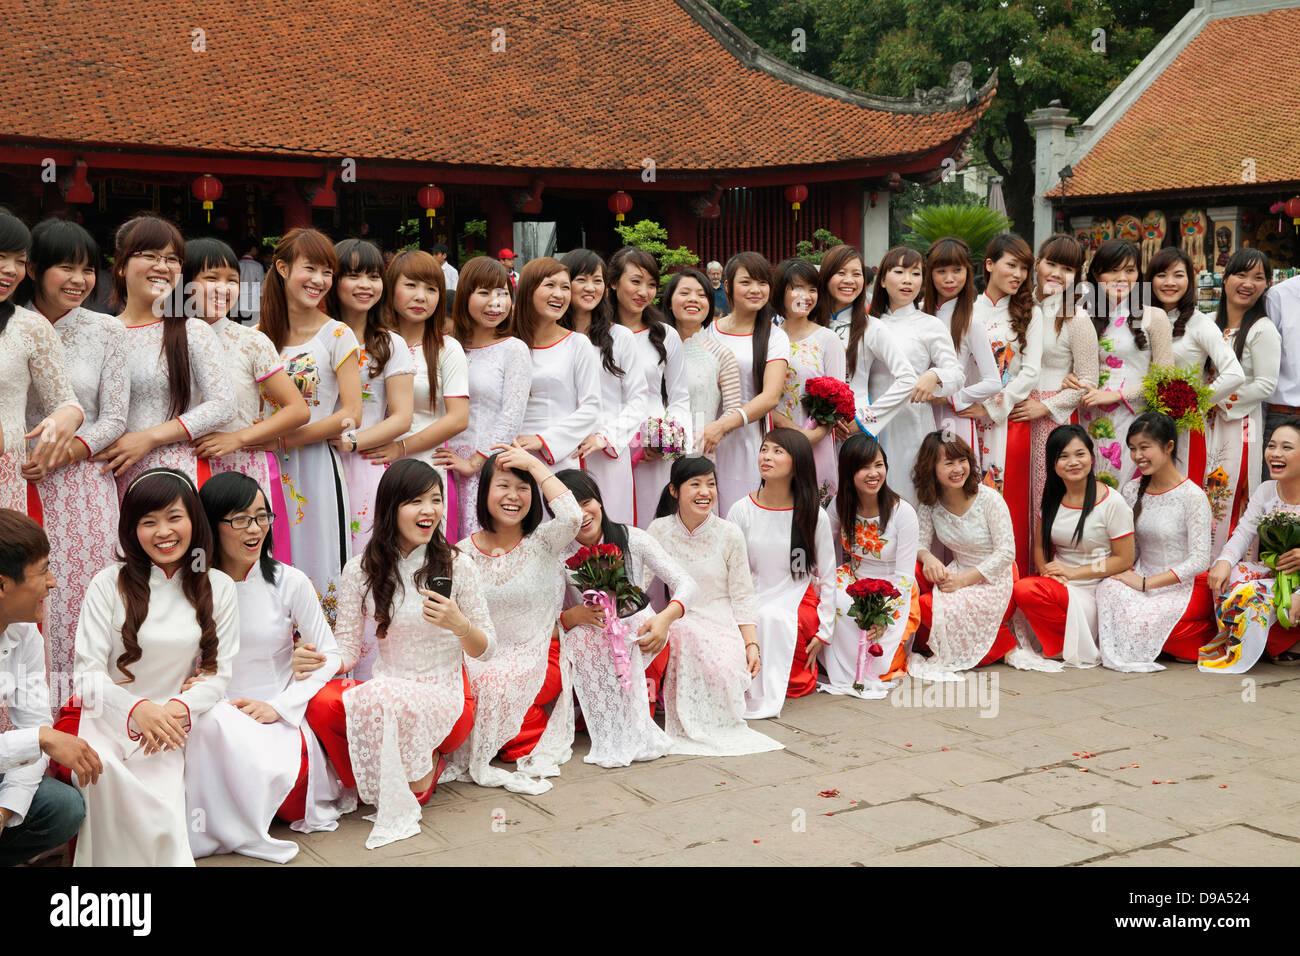 Young female college graduates pose for a portrait at the Temple of Literature in Hanoi, Vietnam, Southeast Asia Stock Photo